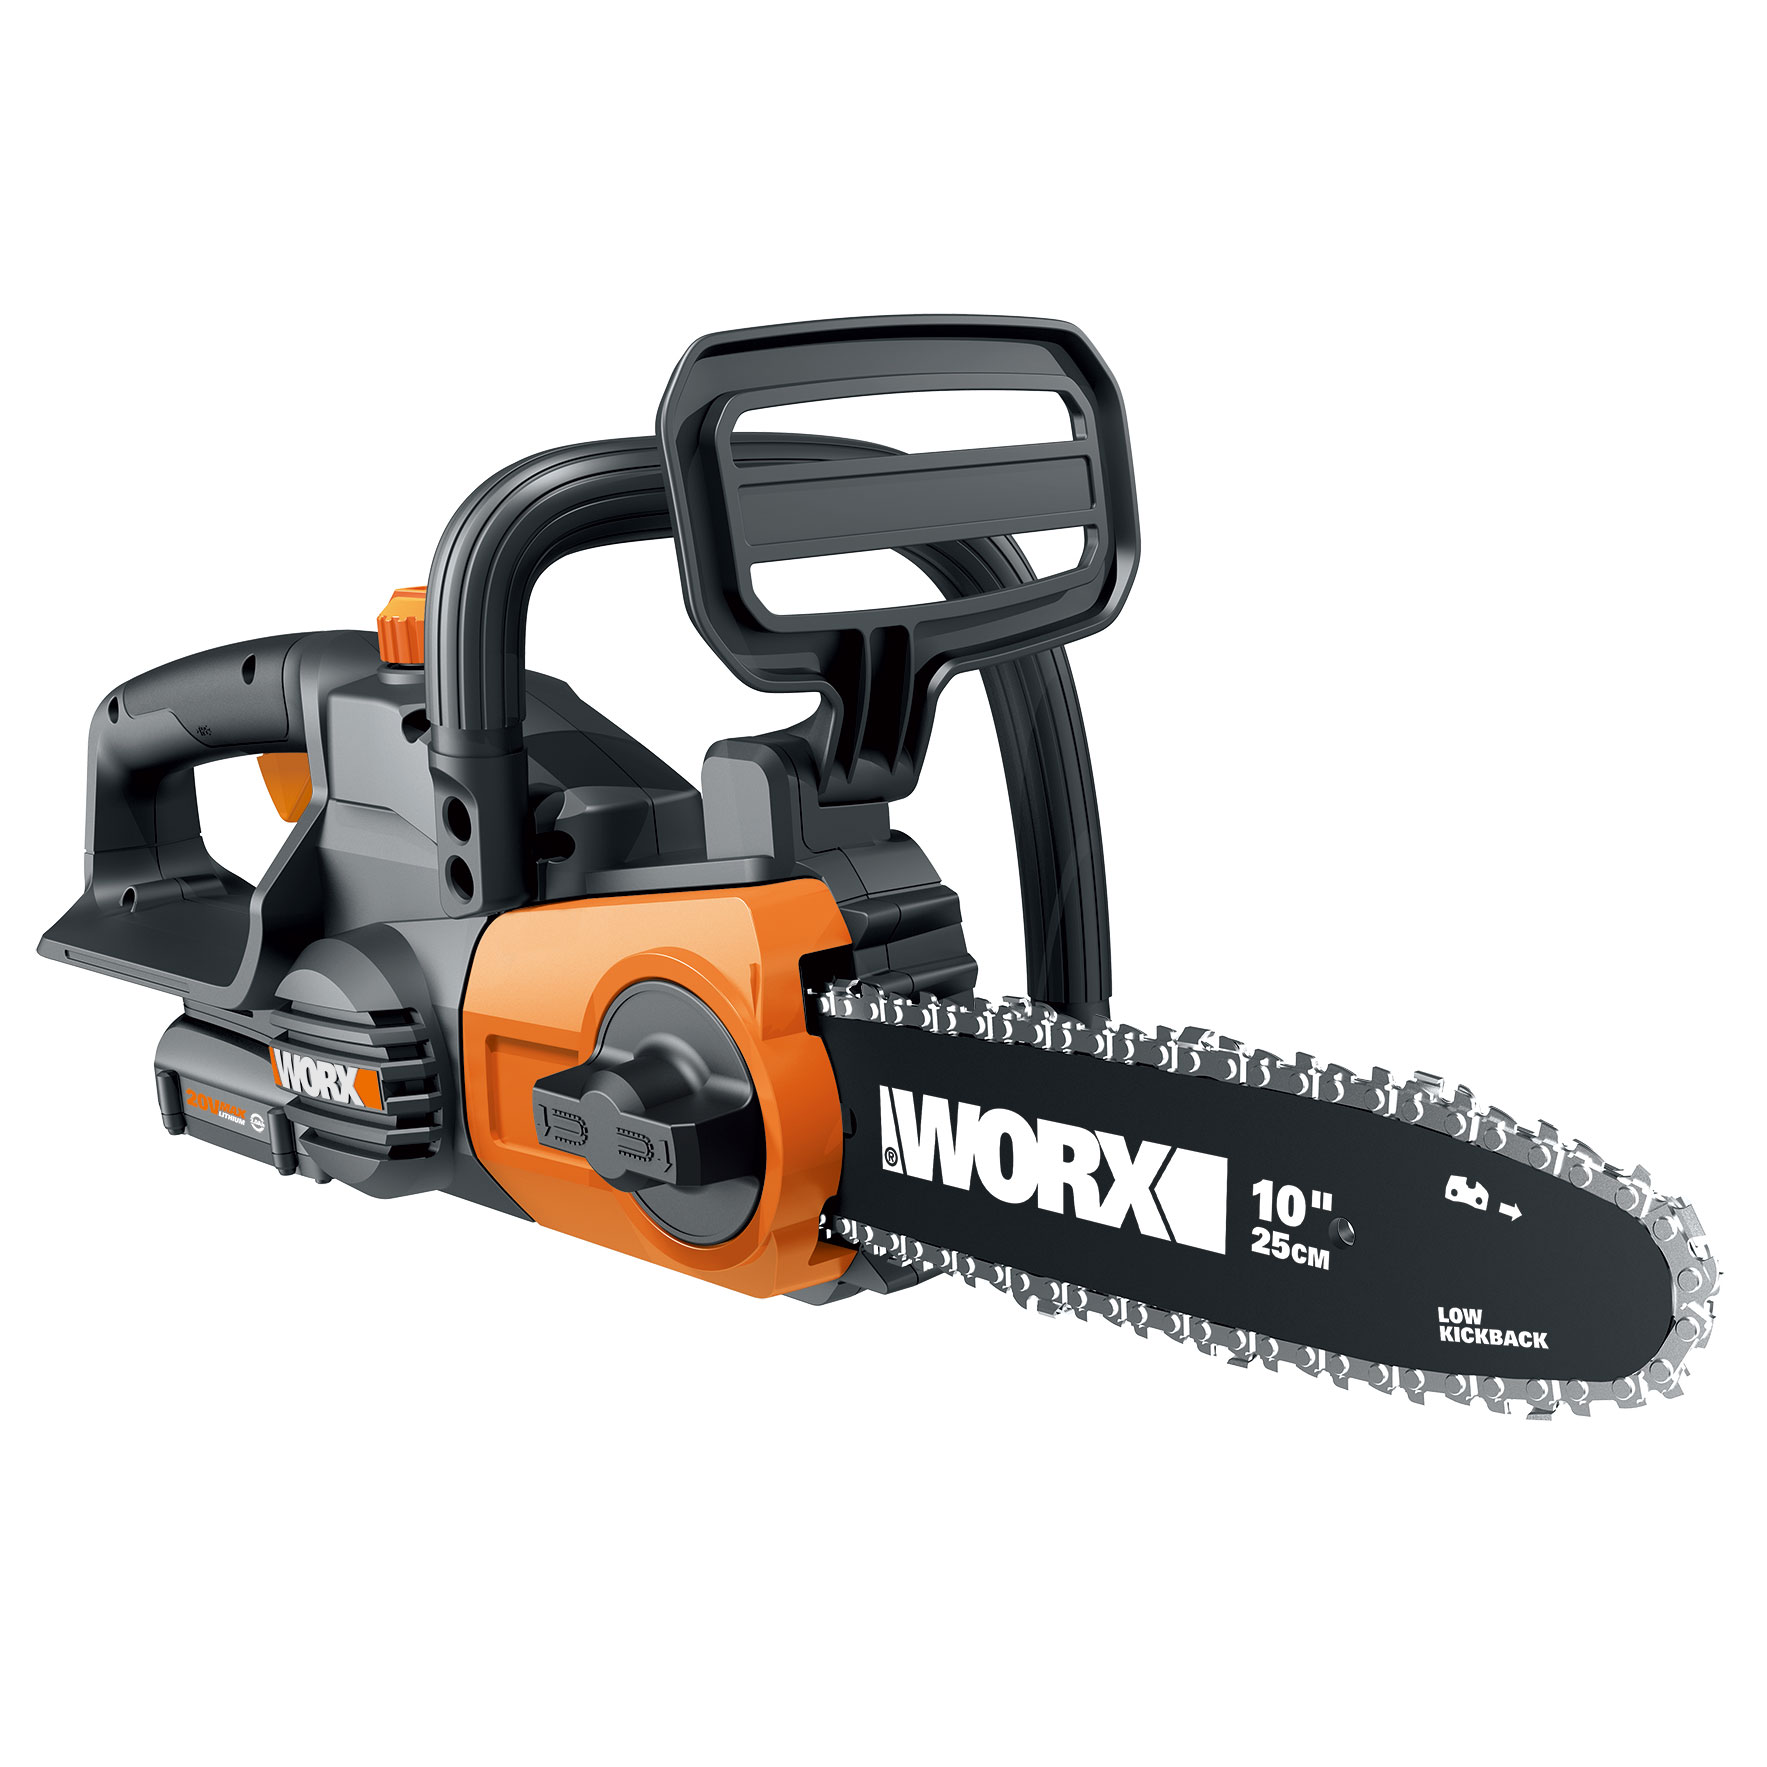 Worx Wg322 10 In Cordless 20v Chainsaw With Auto Tension And Auto Oiling Walmart Com Walmart Com